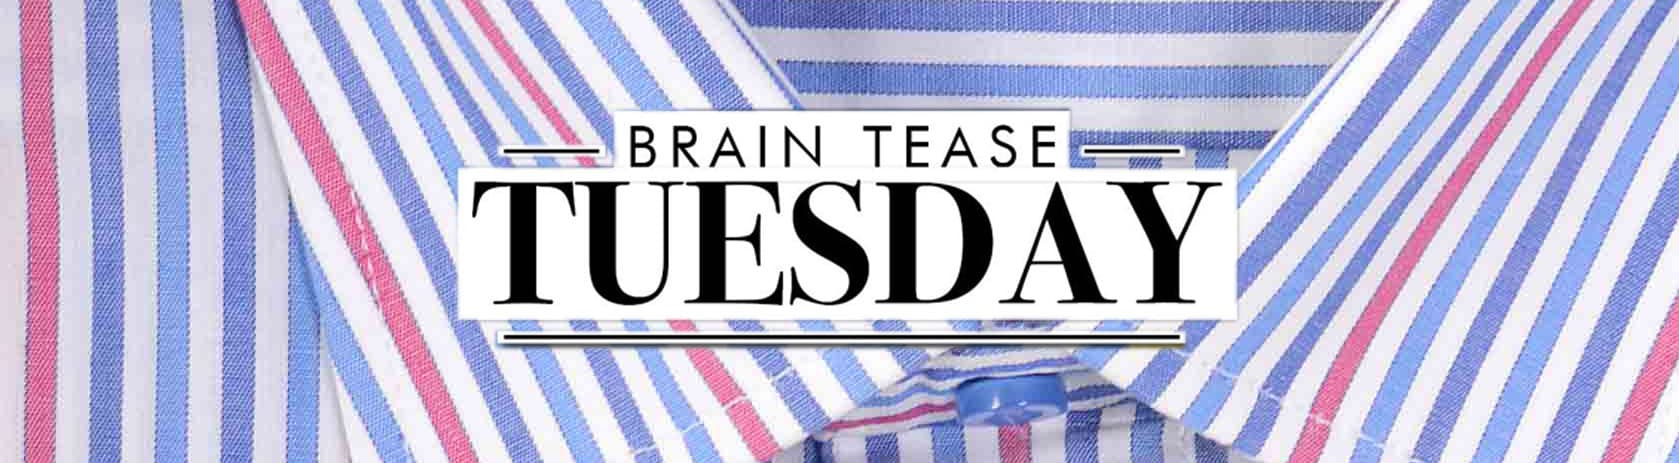 Brain Tease Tuesday Week 25